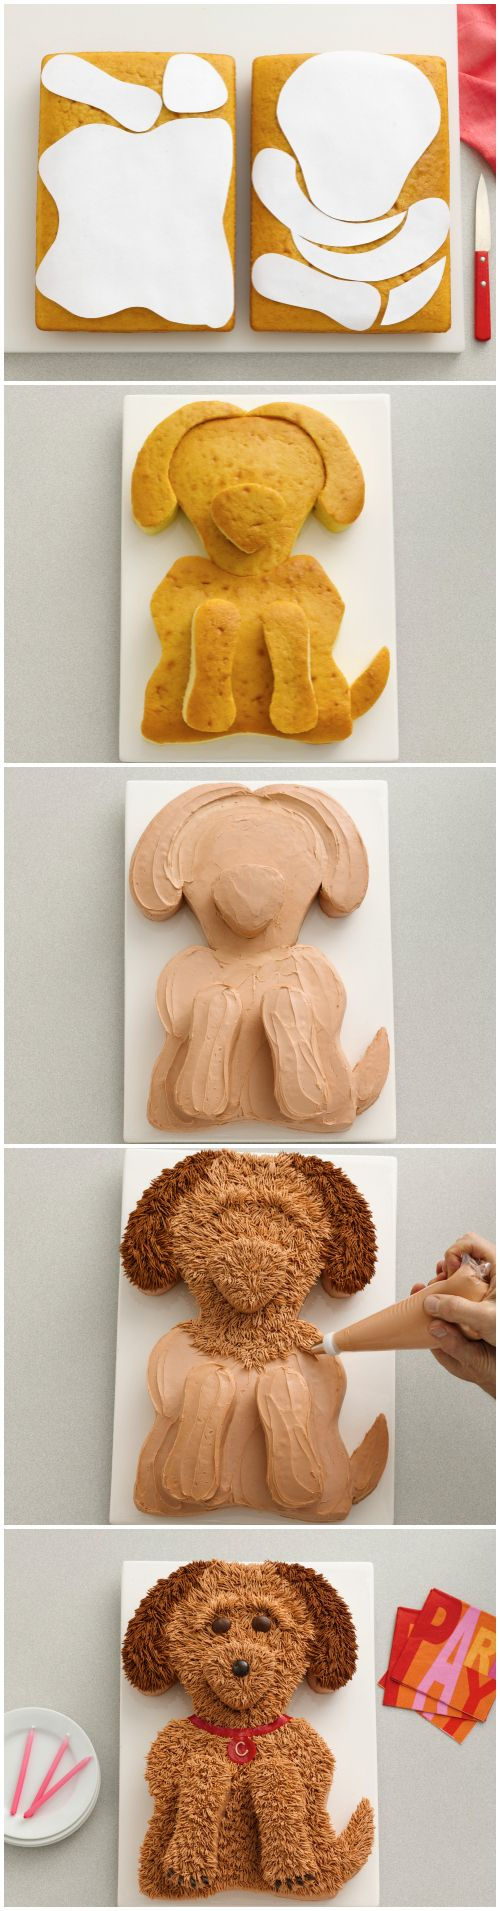 "Puppy cake. This would be cute for a boy baby shower...""snakes, snails, & puppy dog tails"" ;)"